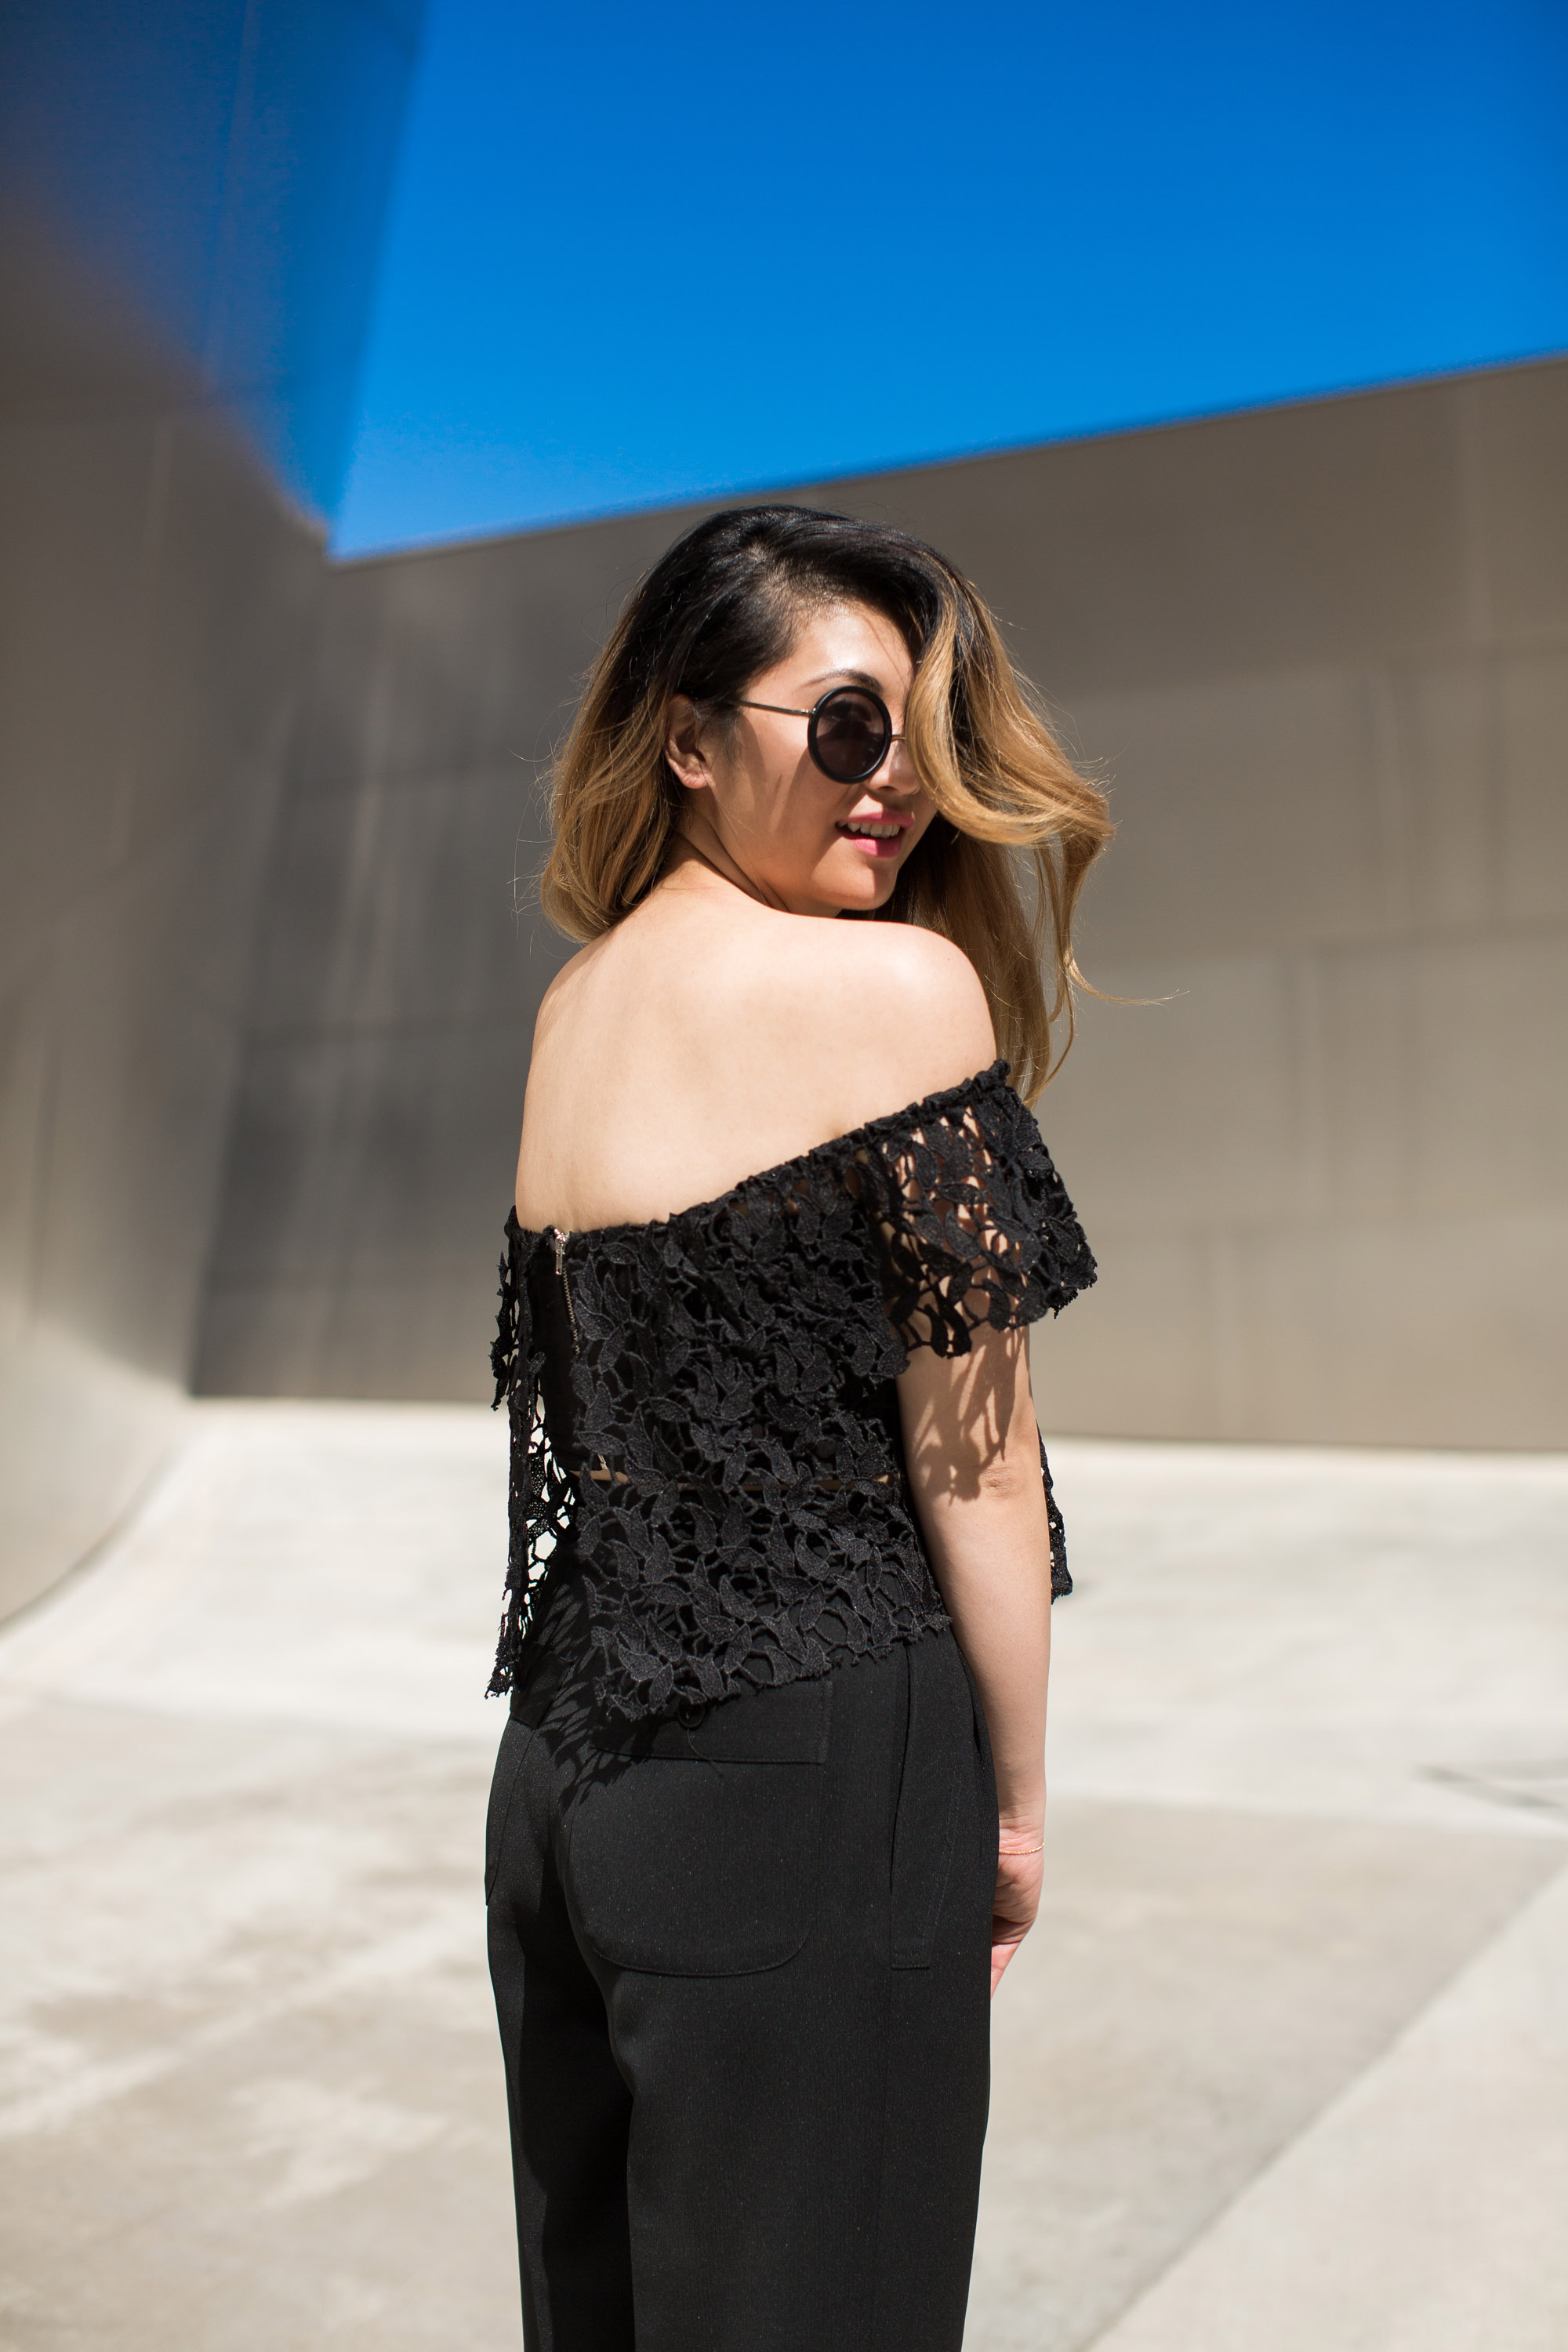 melissademata.com | Lace Off-the-Shoulder Crop Top